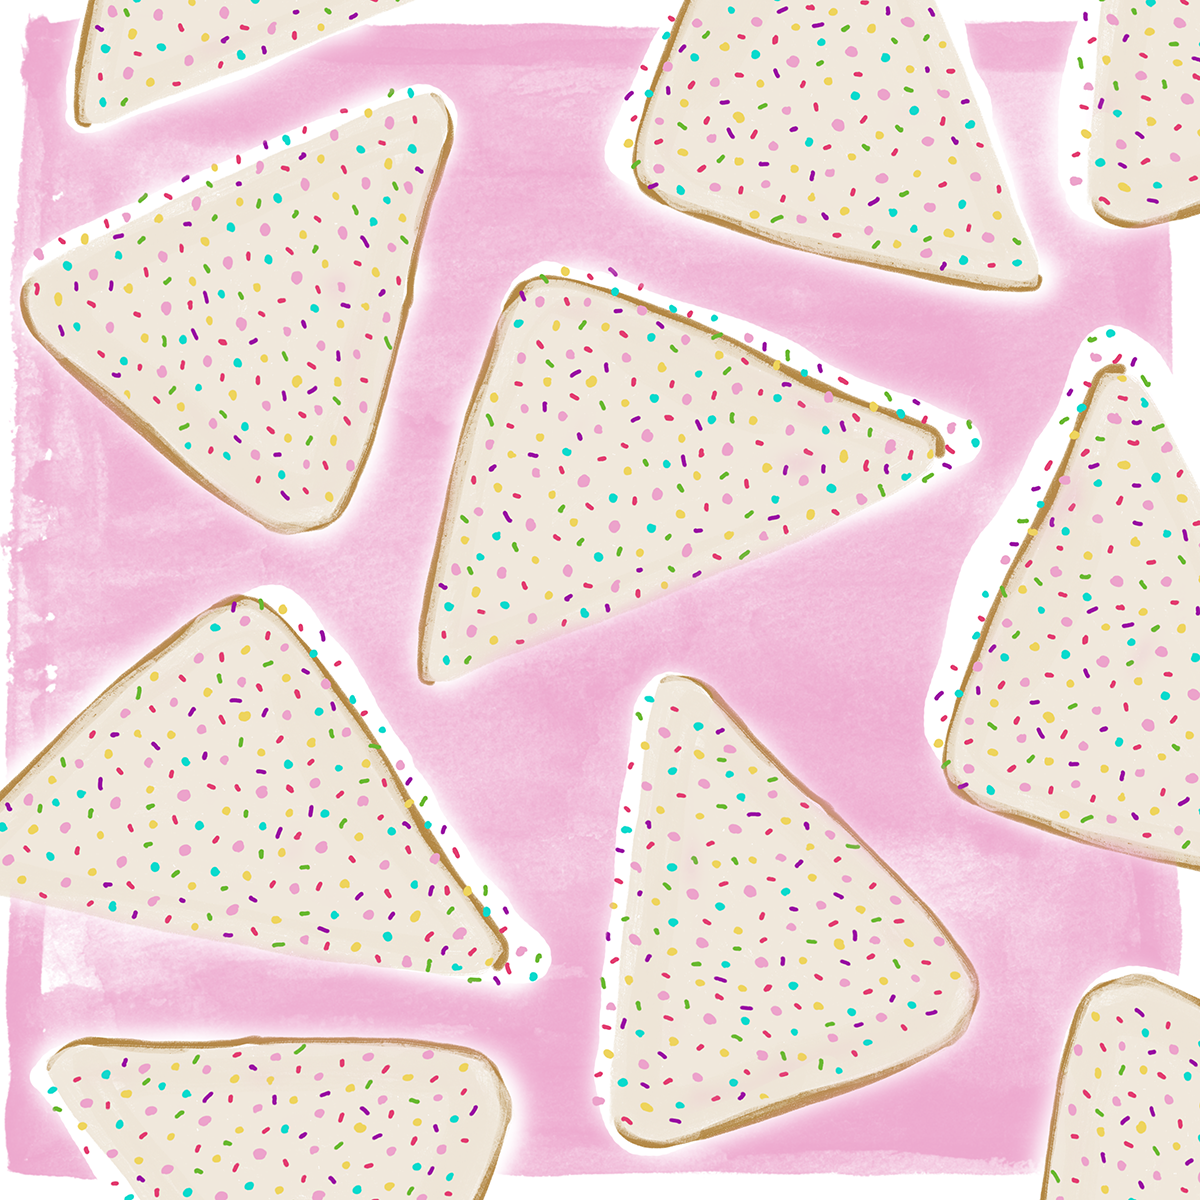 fairybread_small.png